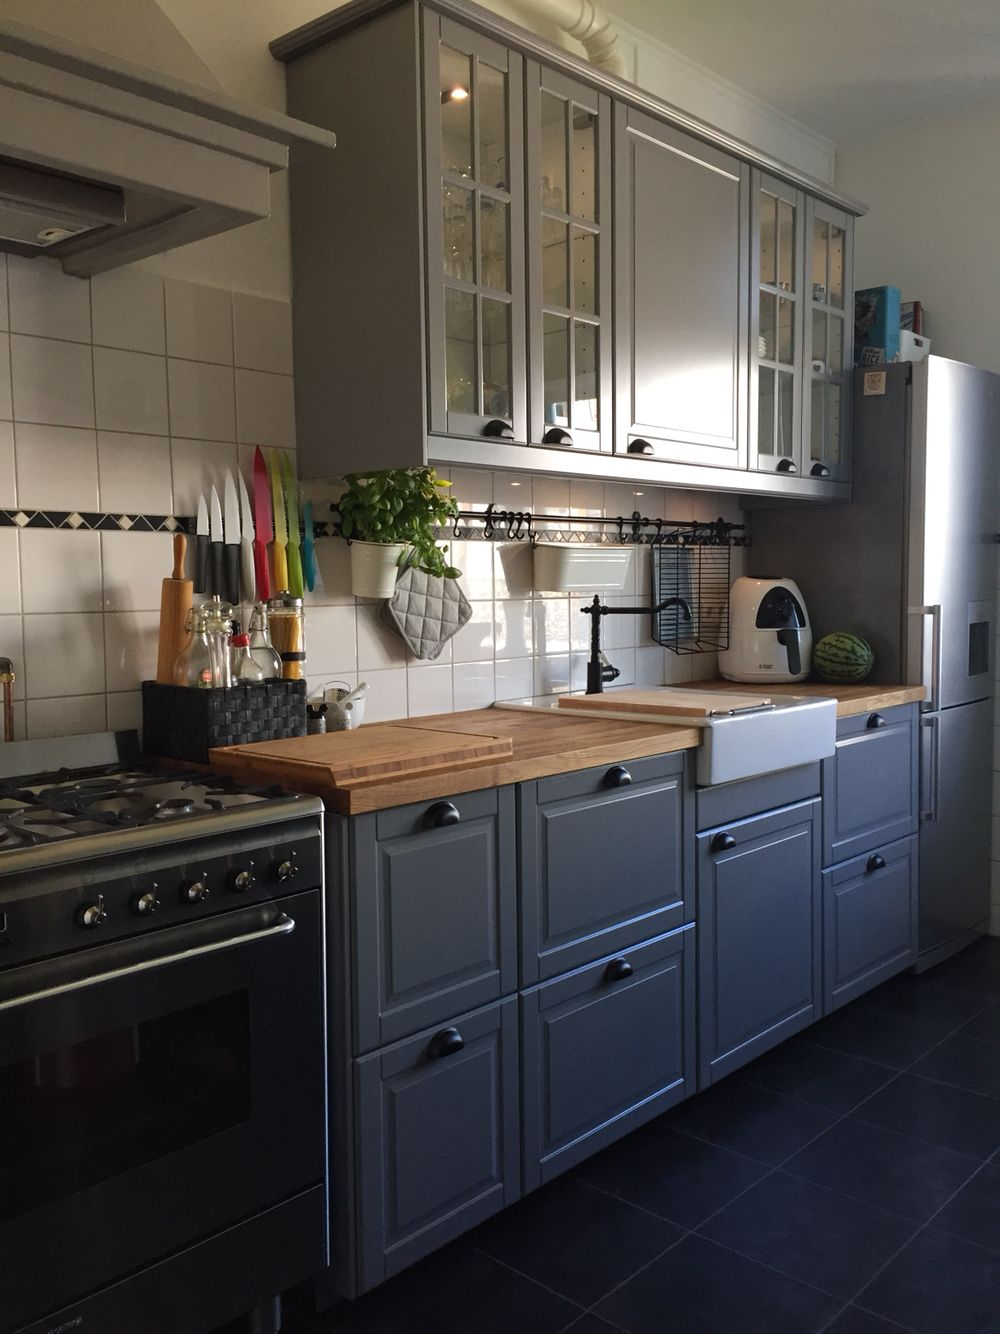 Best New Kitchen Ikea Bodbyn Grey Ikea Bodbyn Pinterest 400 x 300